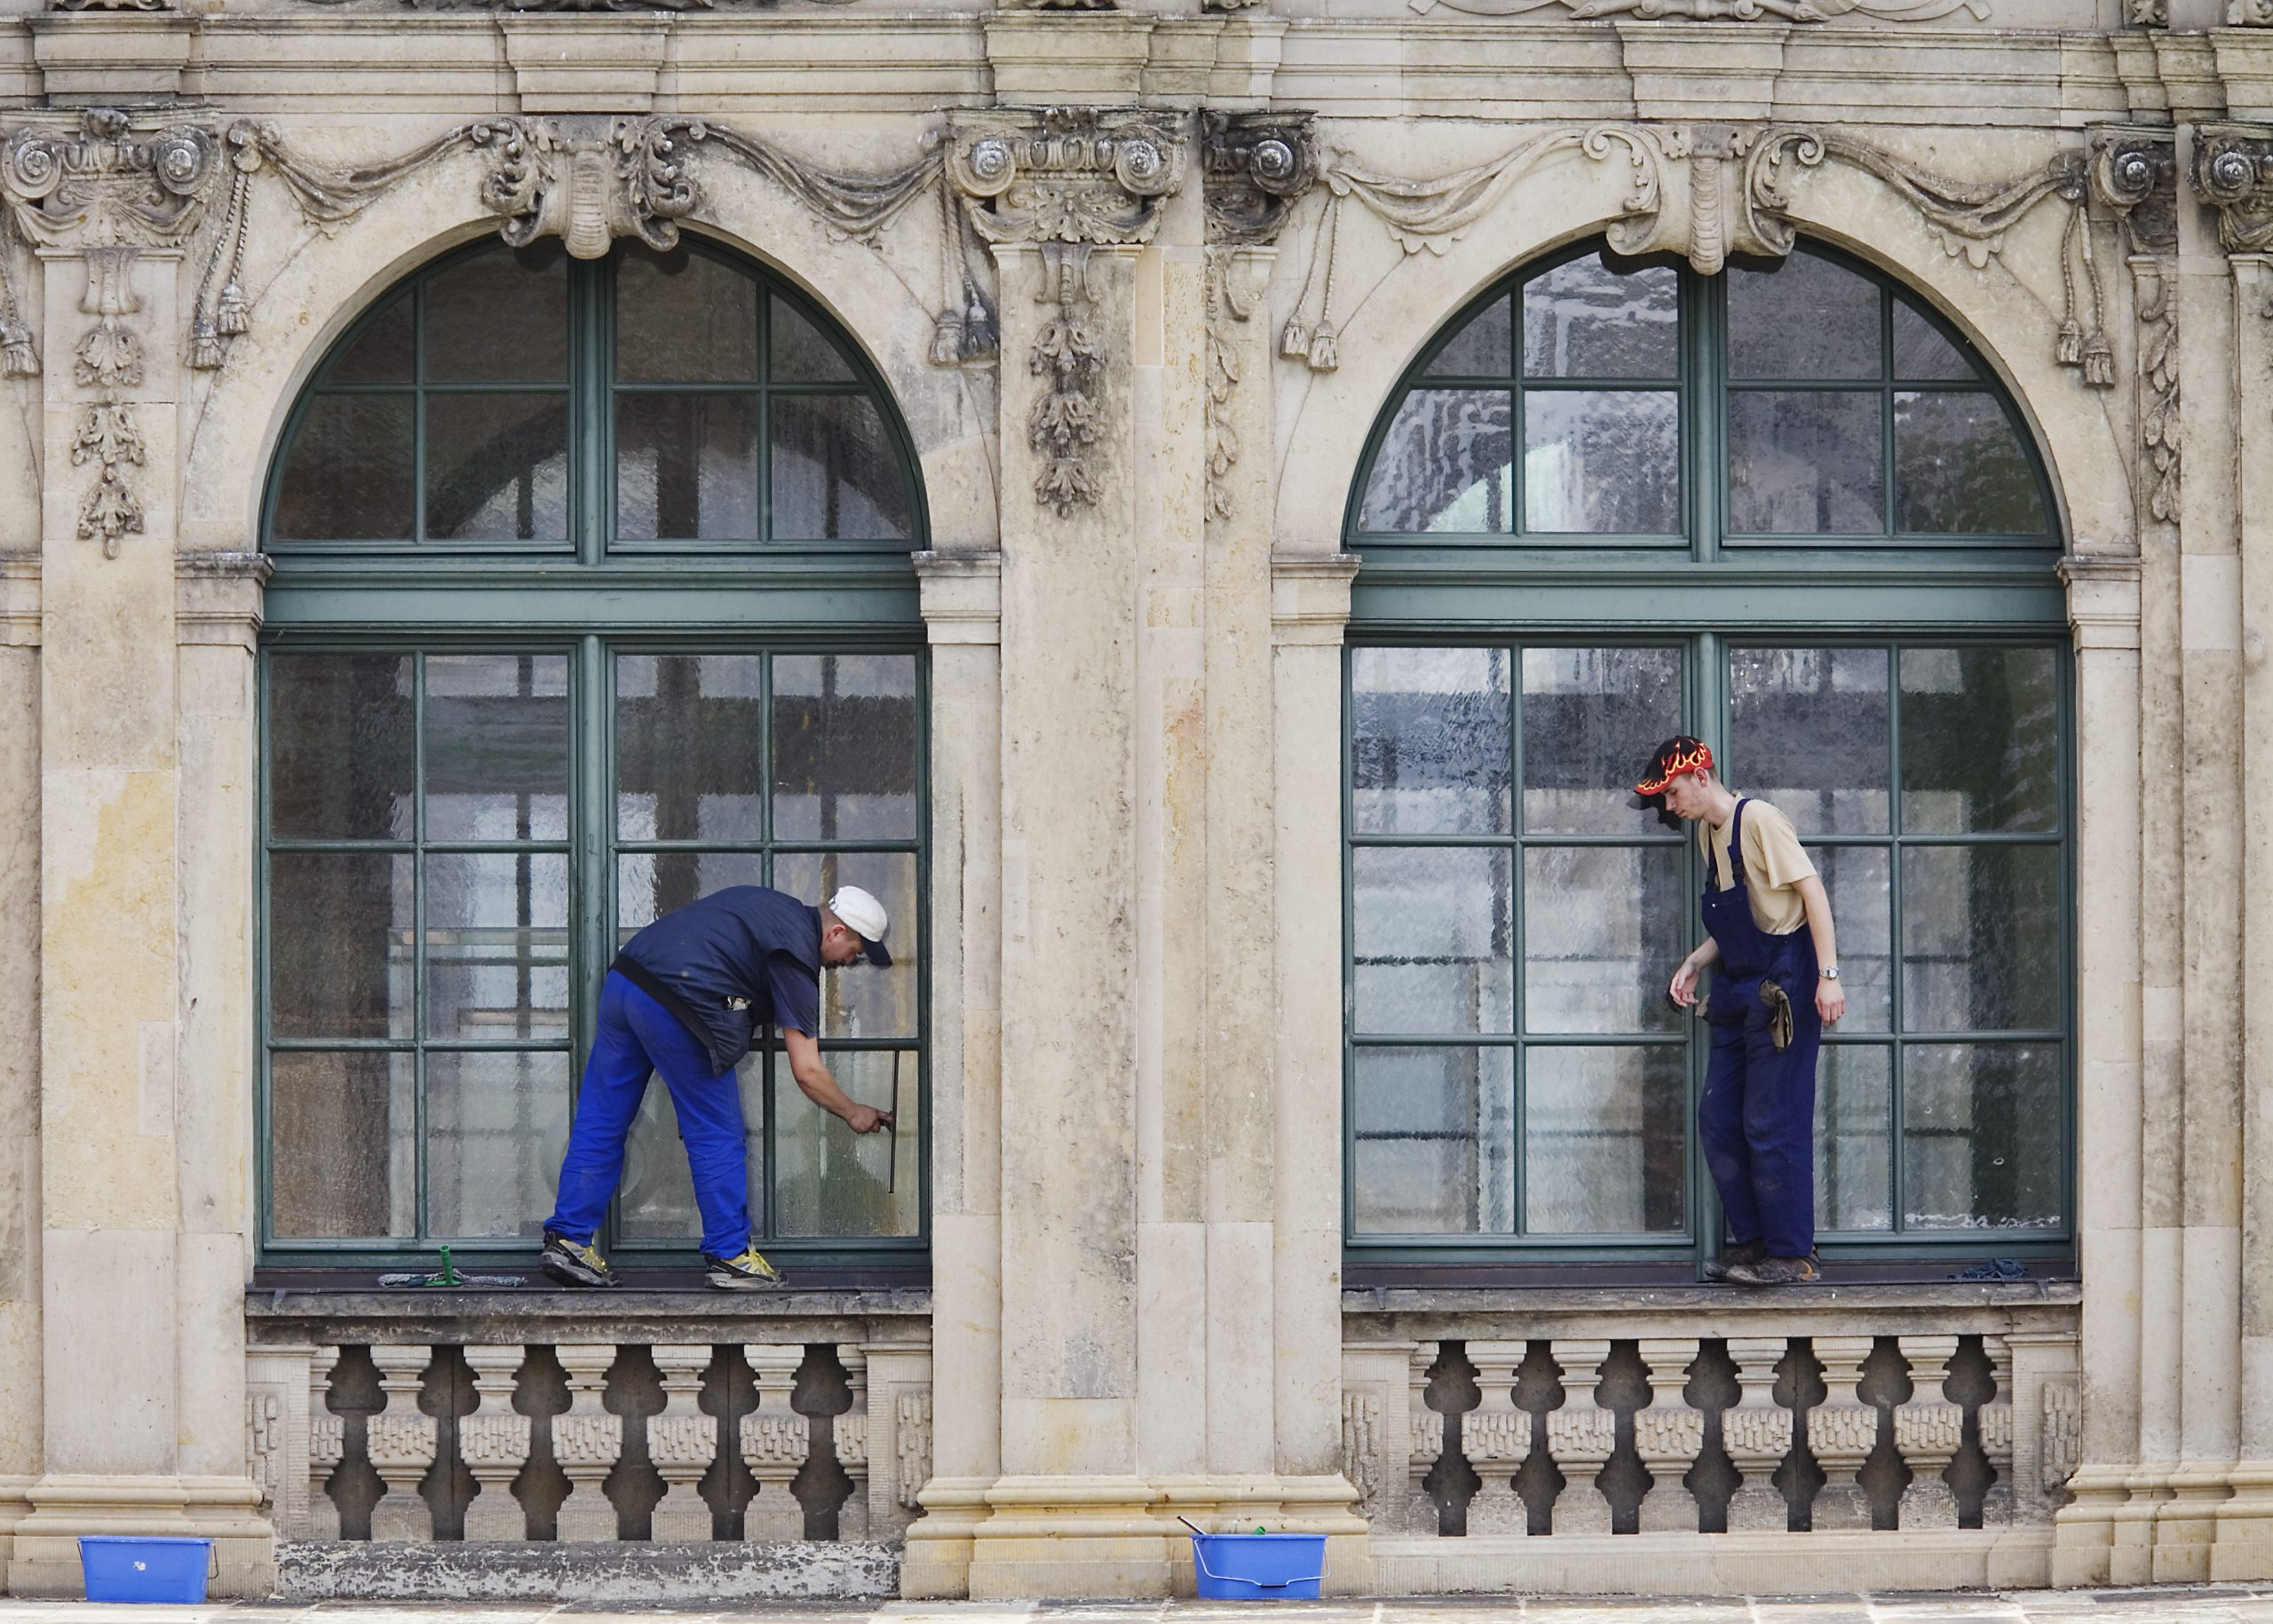 window cleaner window windows architecture detail sculpture arch archway archways arches occupation trade employment clean cleaning maintenance maintain janitorial housekeeping architecture duo window cleaner window cleaners cleaning symmetry symmetric sy